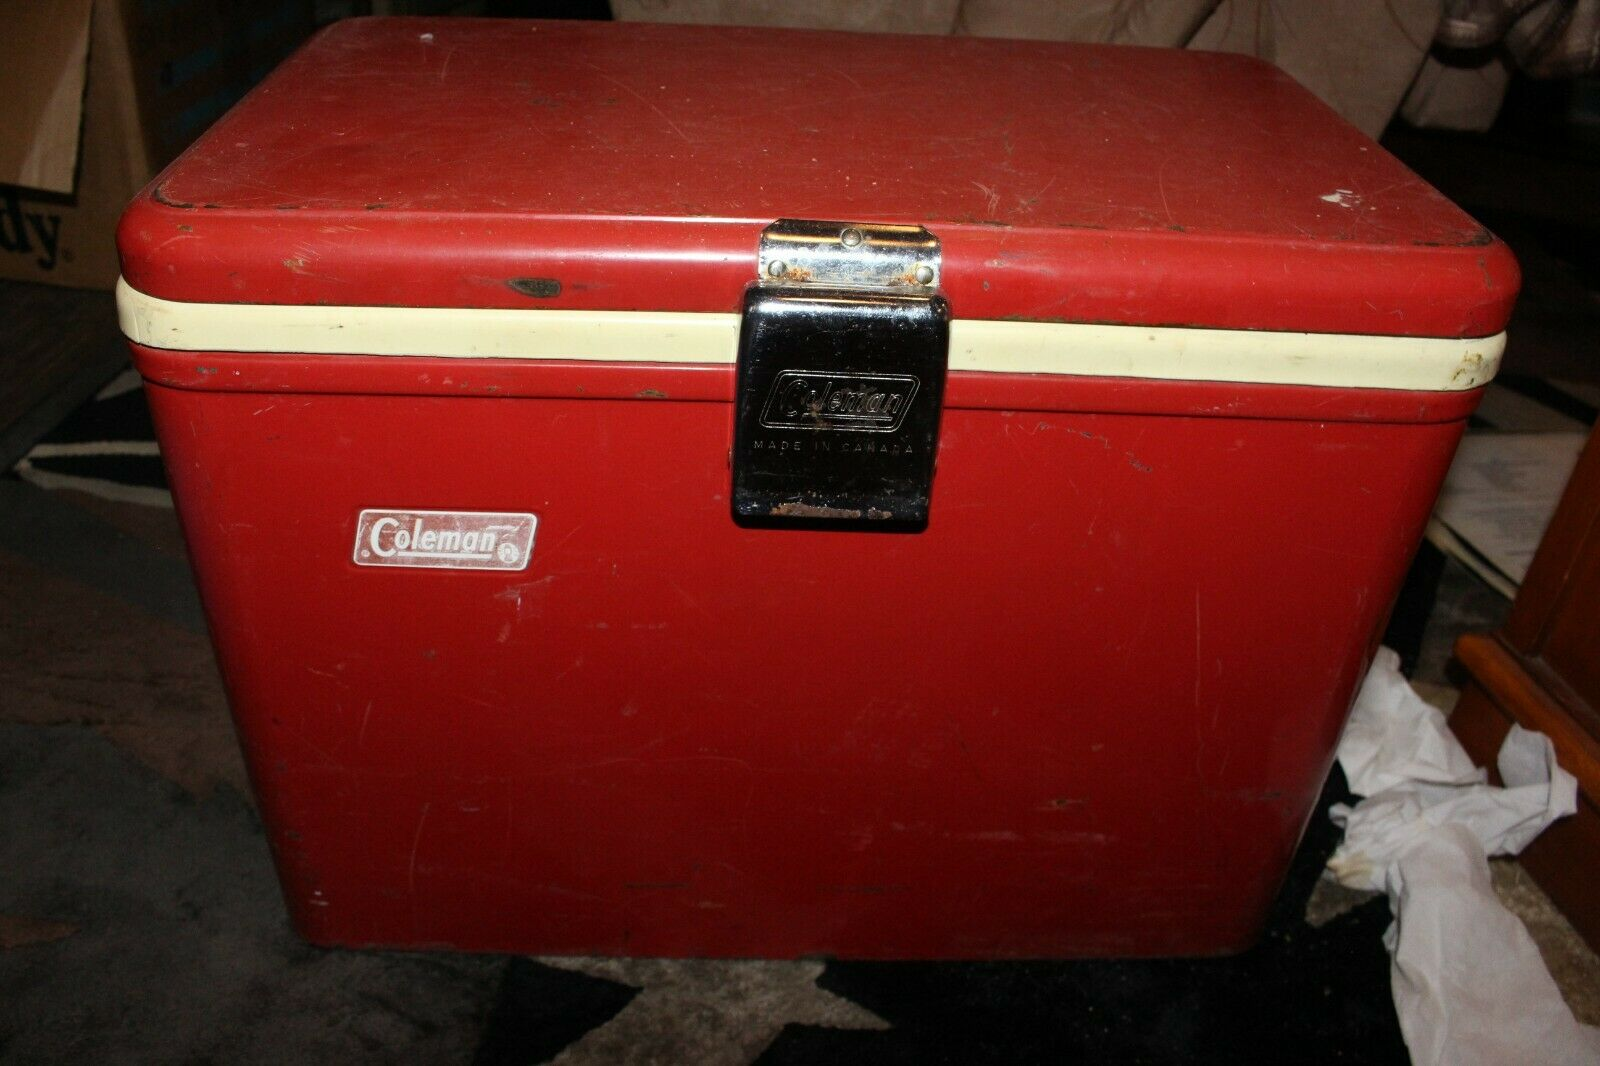 Coleman Red &  White Metal Cooler Vintage Camping Car Show Ice Chest Steel  classic fashion